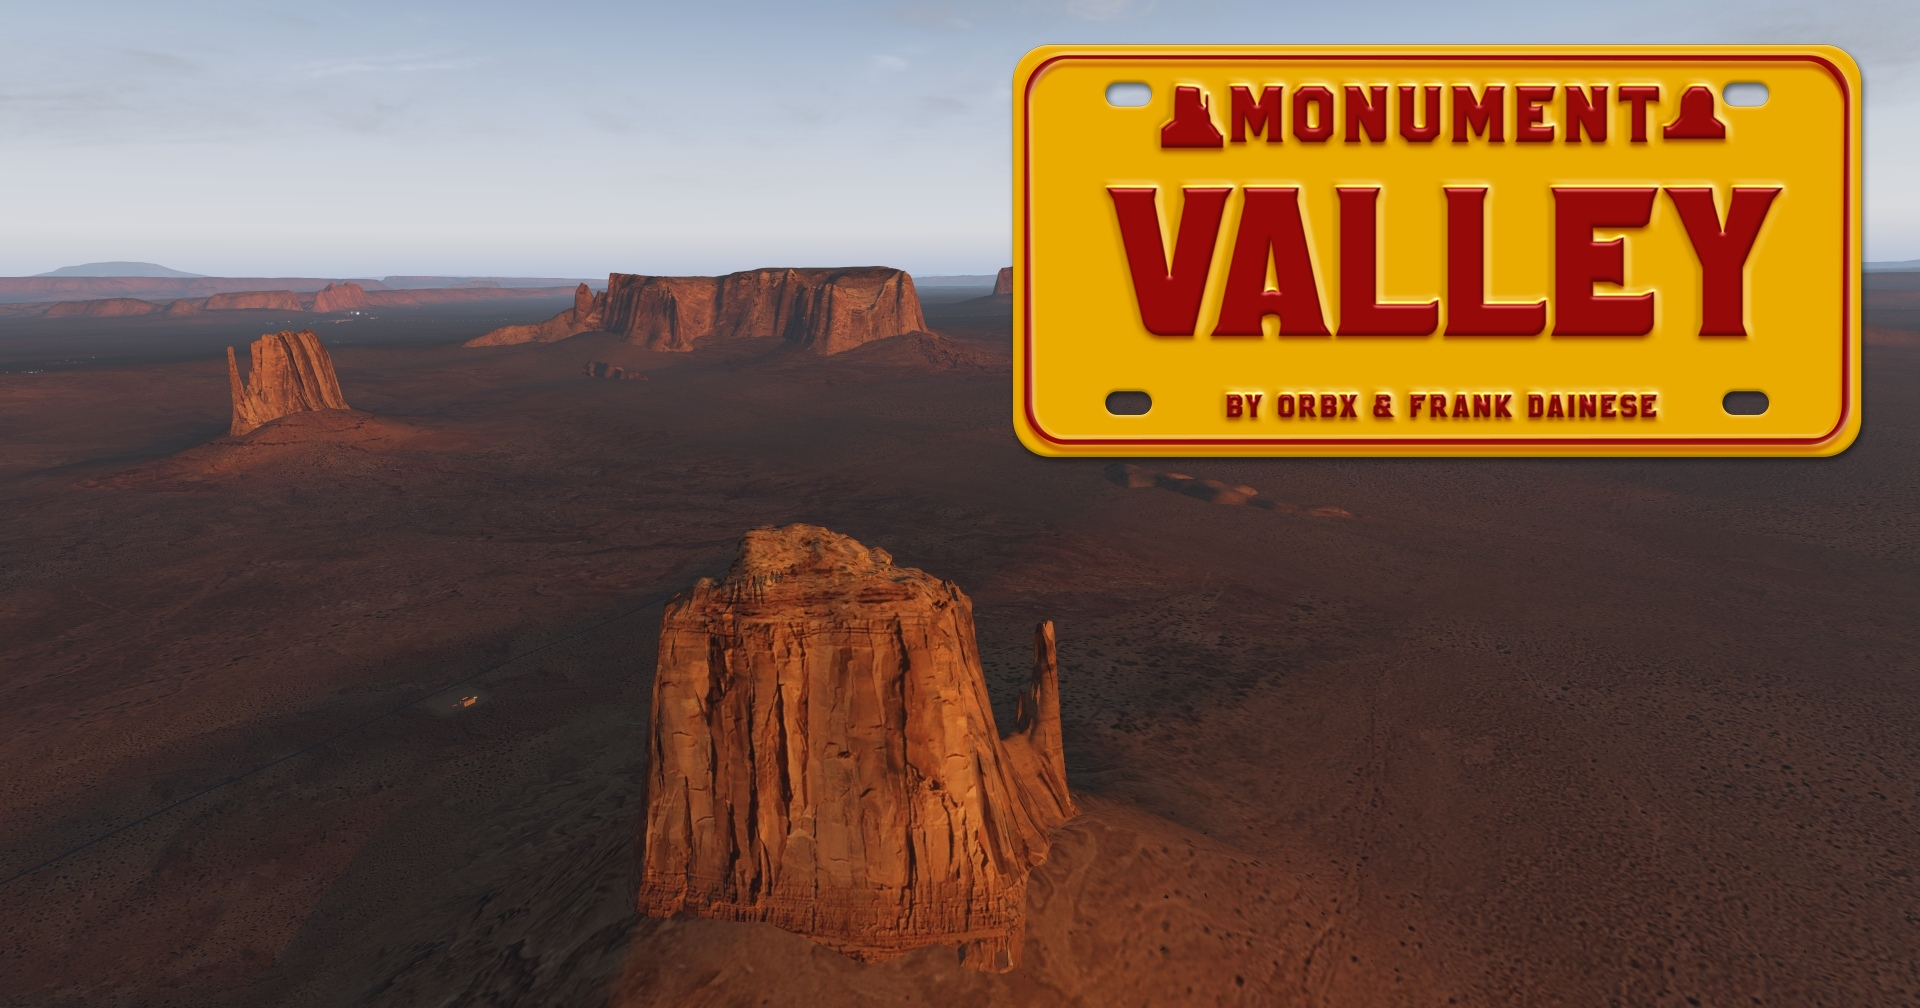 Review: Orbx & Frank Dainese - Monument Valley für X-Plane 11